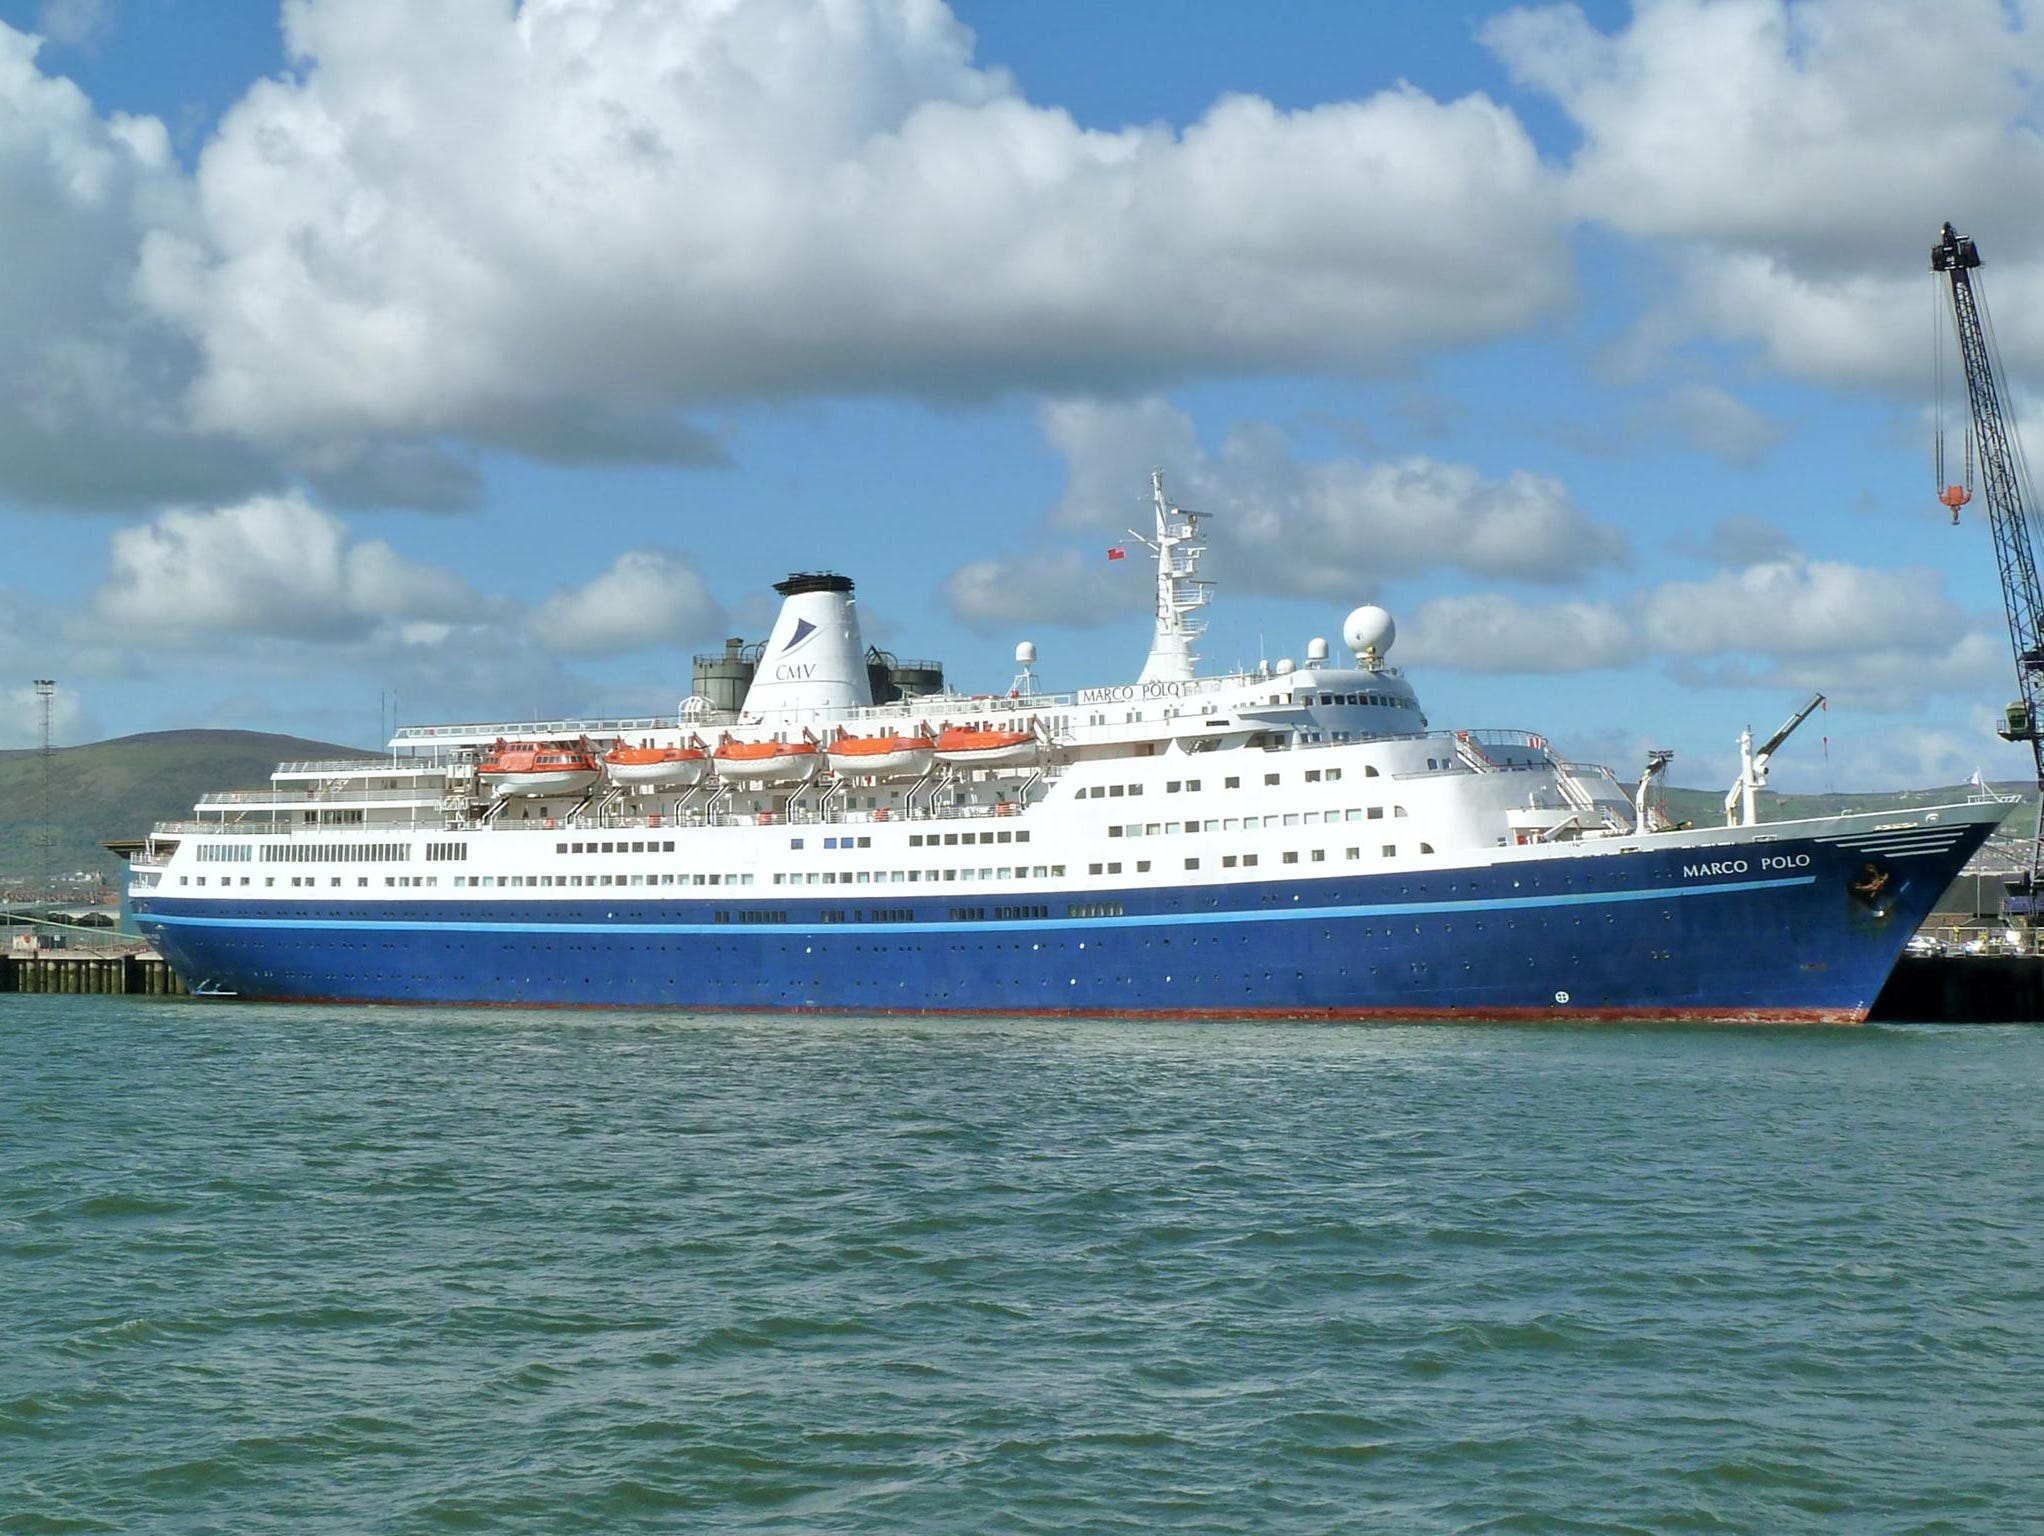 U.K.-based Cruise and Maritime Voyages' 850-passenger, 22,080-ton Marco Polo has a long, rich history as a passenger liner and expedition-style cruise ship. While not for cruisers requiring verandas and all the latest bells and whistles, the Marco Polo is a low-key, elegant ship with a loyal, largely British-based clientele.